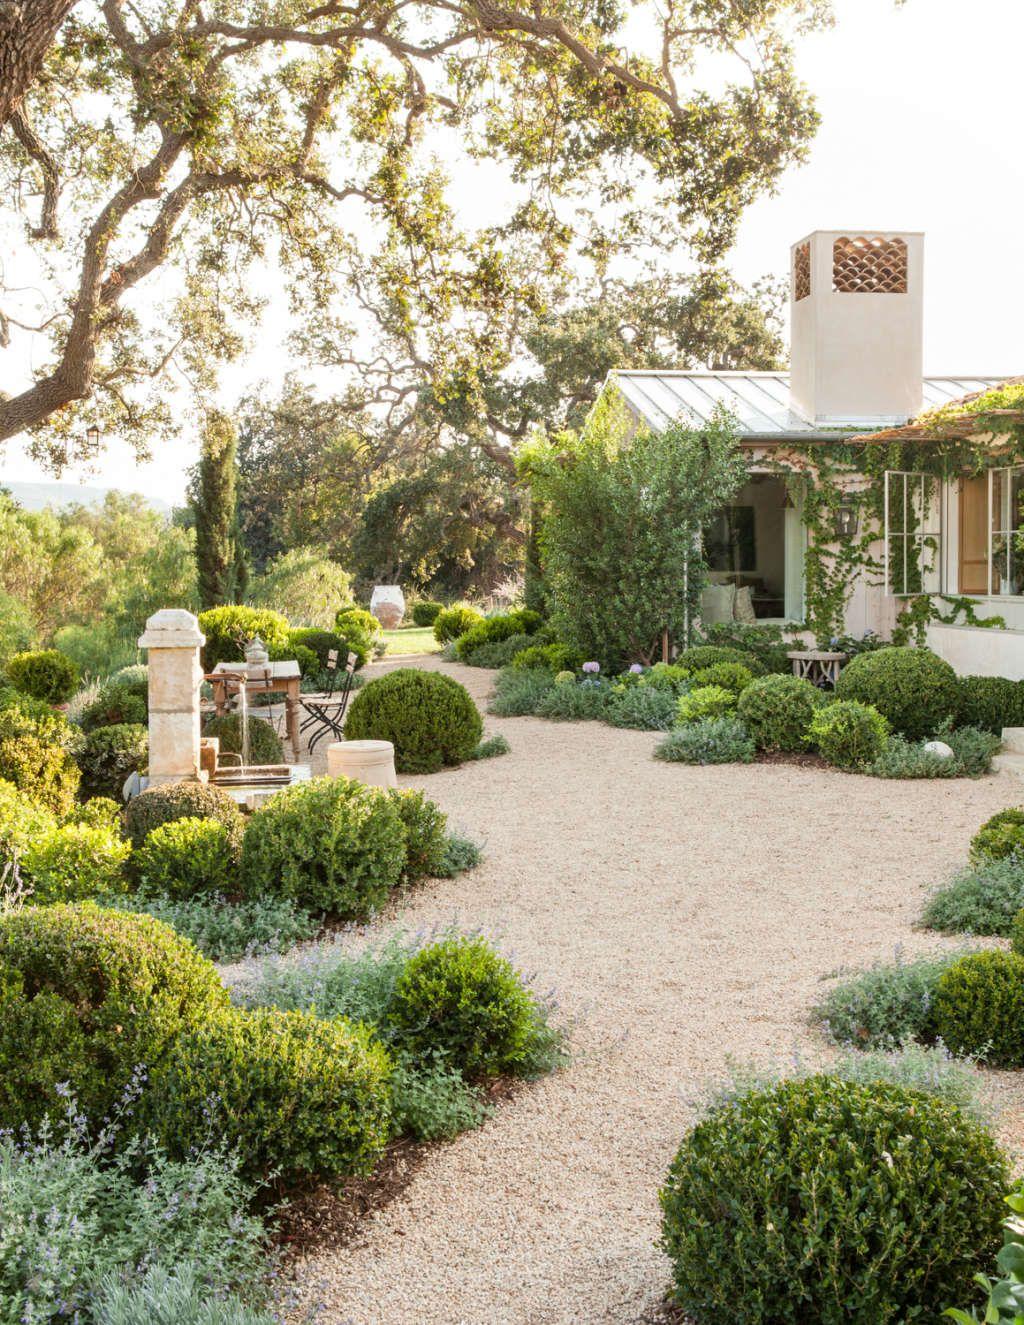 Take Another Look at Gravel: Chic Ways to Use It Outdoors